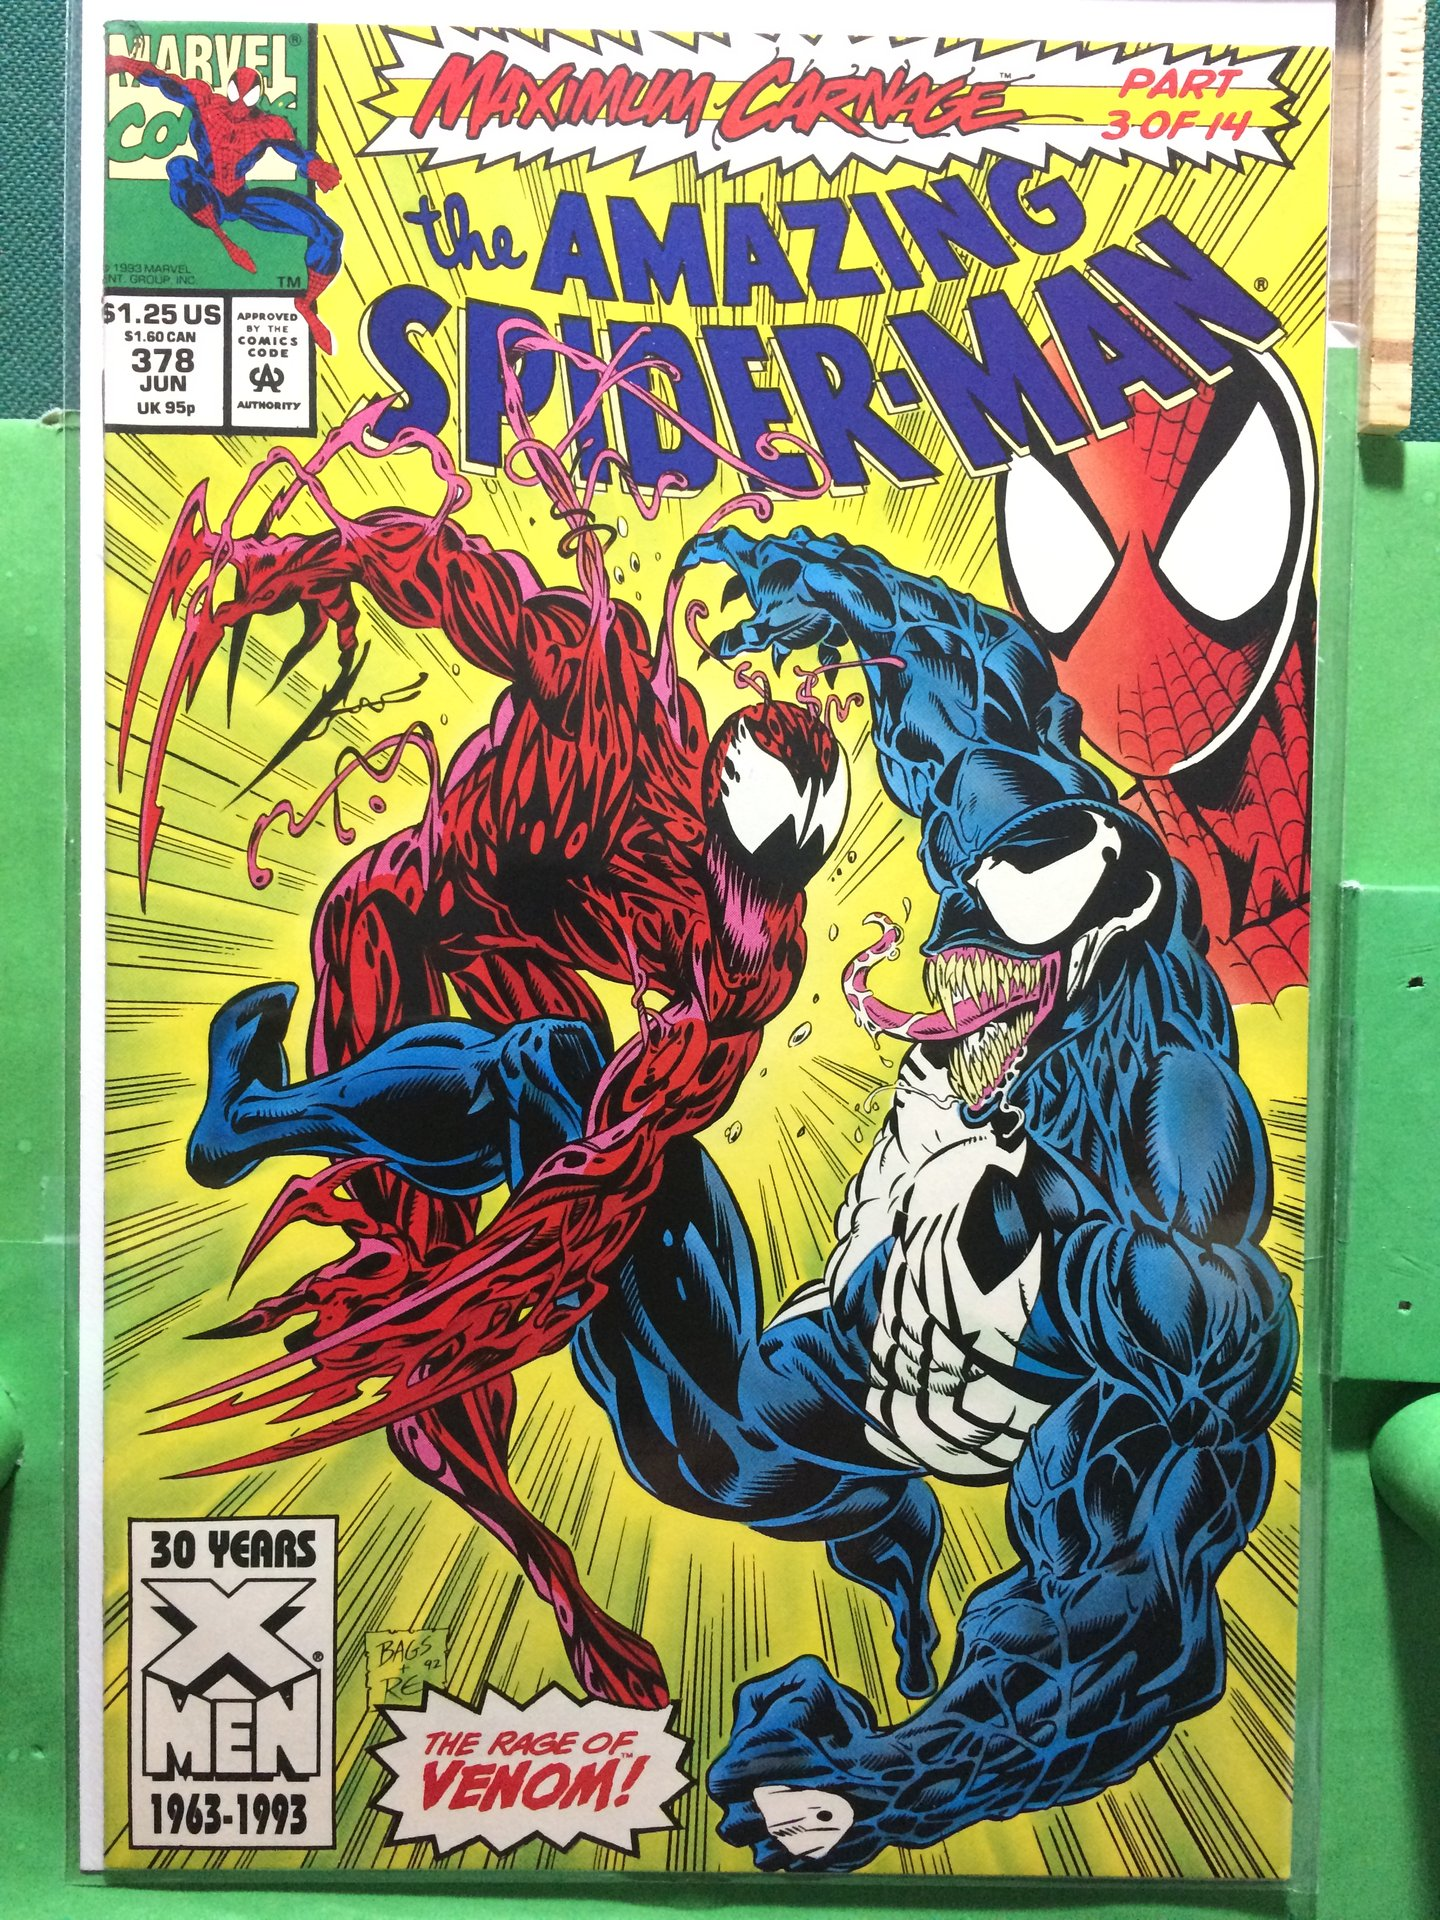 1st Series #3 1993 FN Stock Image Spider-Man 2099